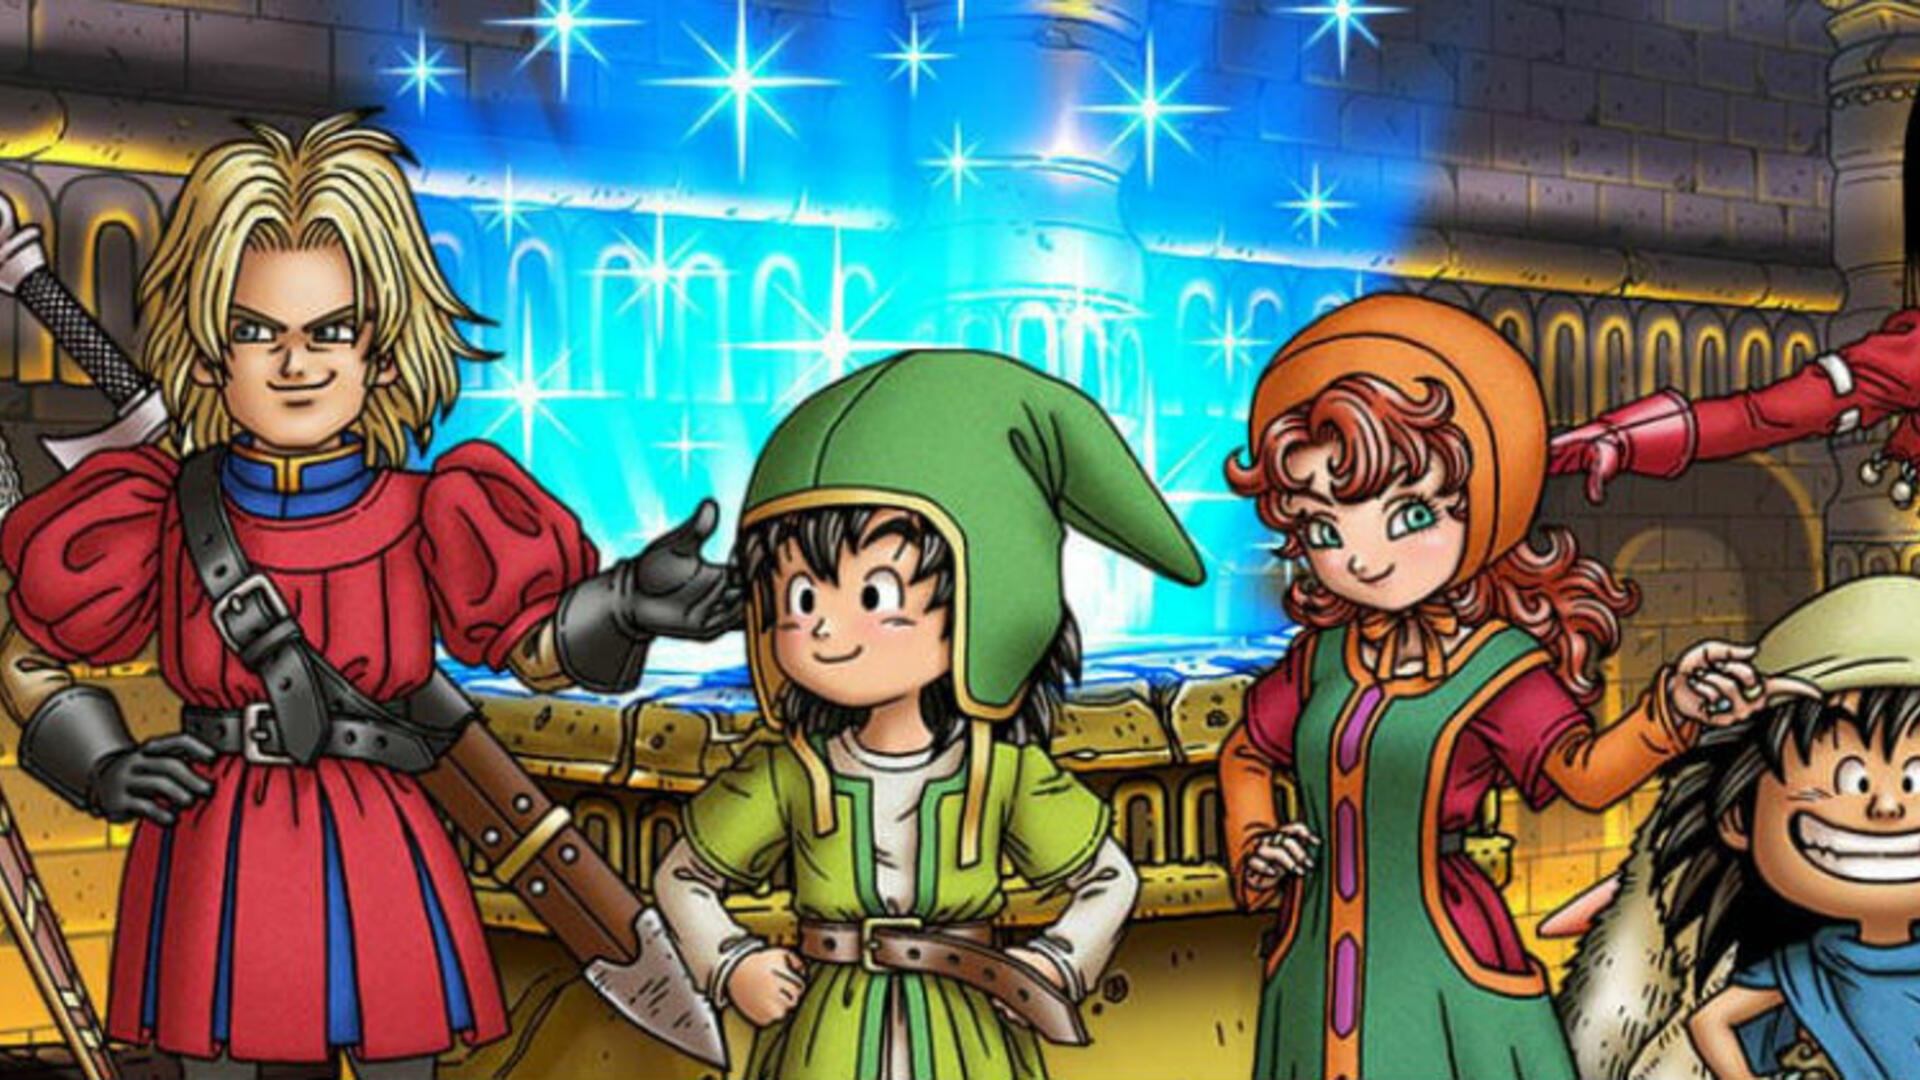 Dragon Quest VII: Fragments of the Forgotten Past Nintendo 3DS Review - A Long Journey, but Not a Draggin' Quest